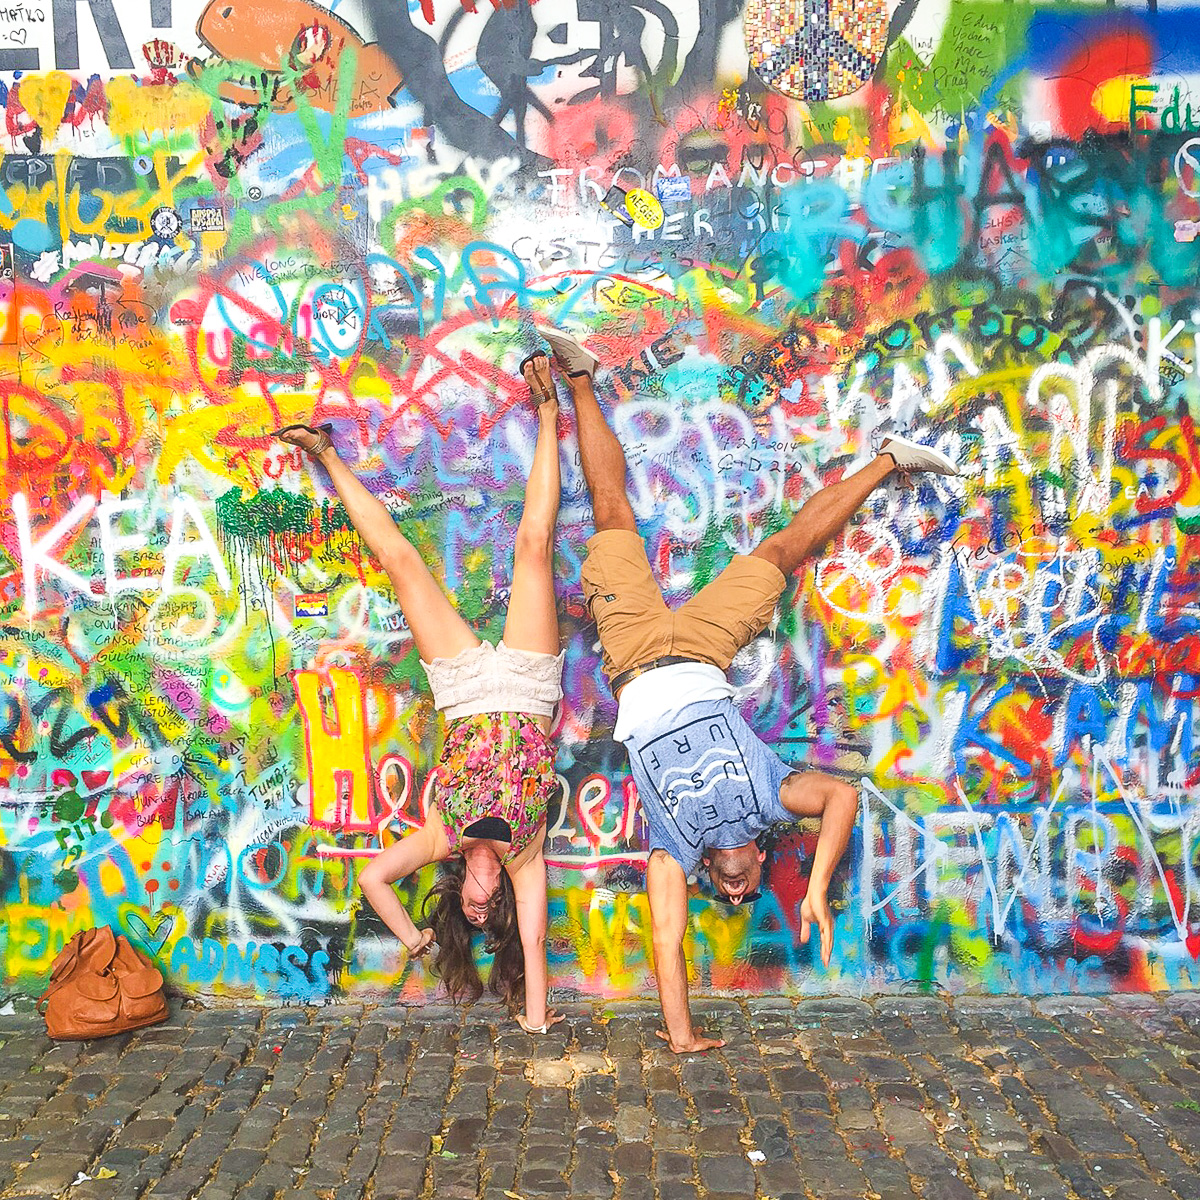 Handstands at the Lennon Wall in Prague